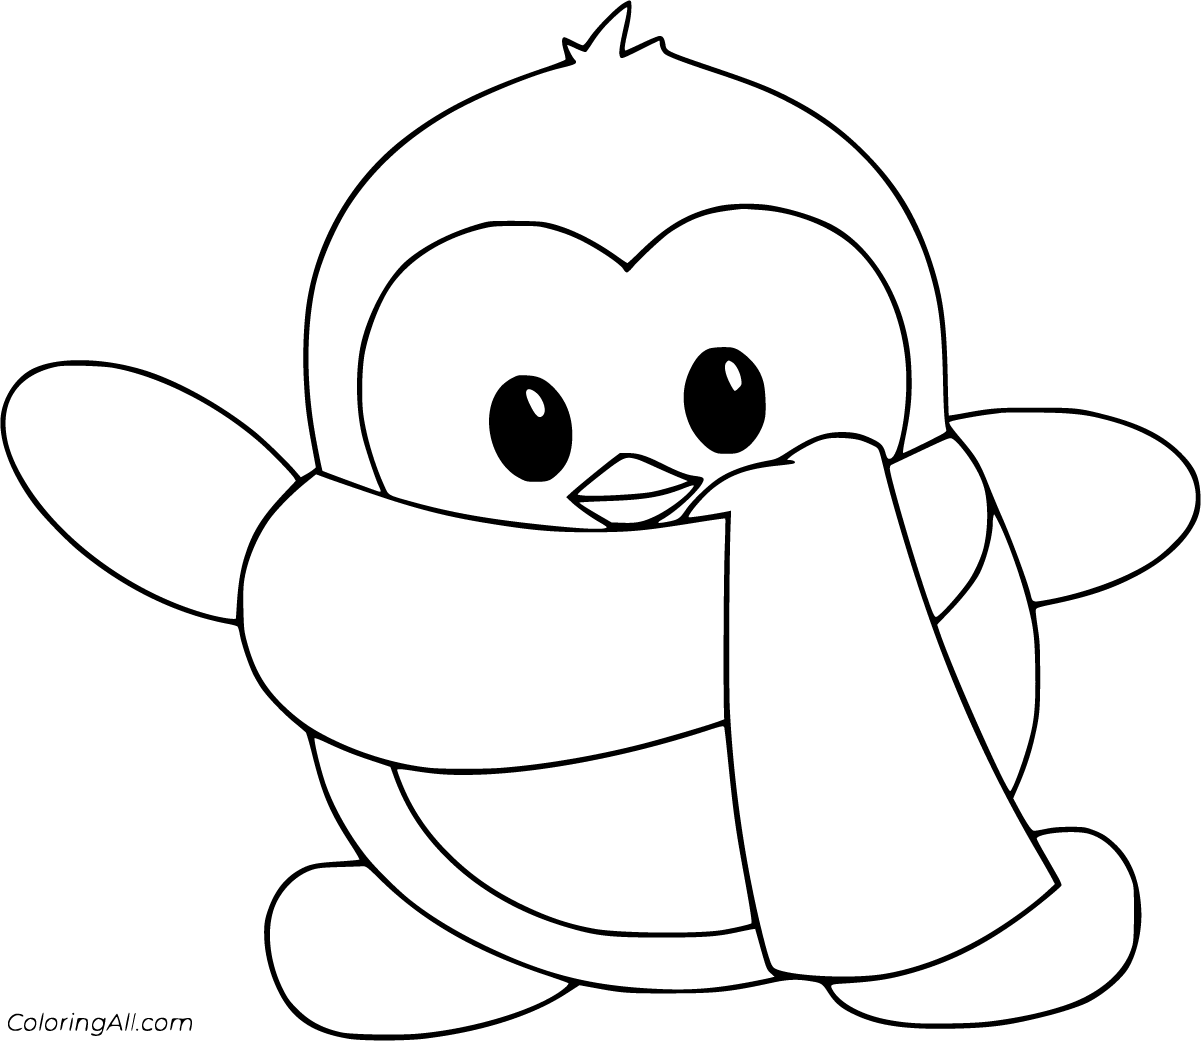 penguin picture to color cute baby penguin coloring pages coloring home color picture to penguin